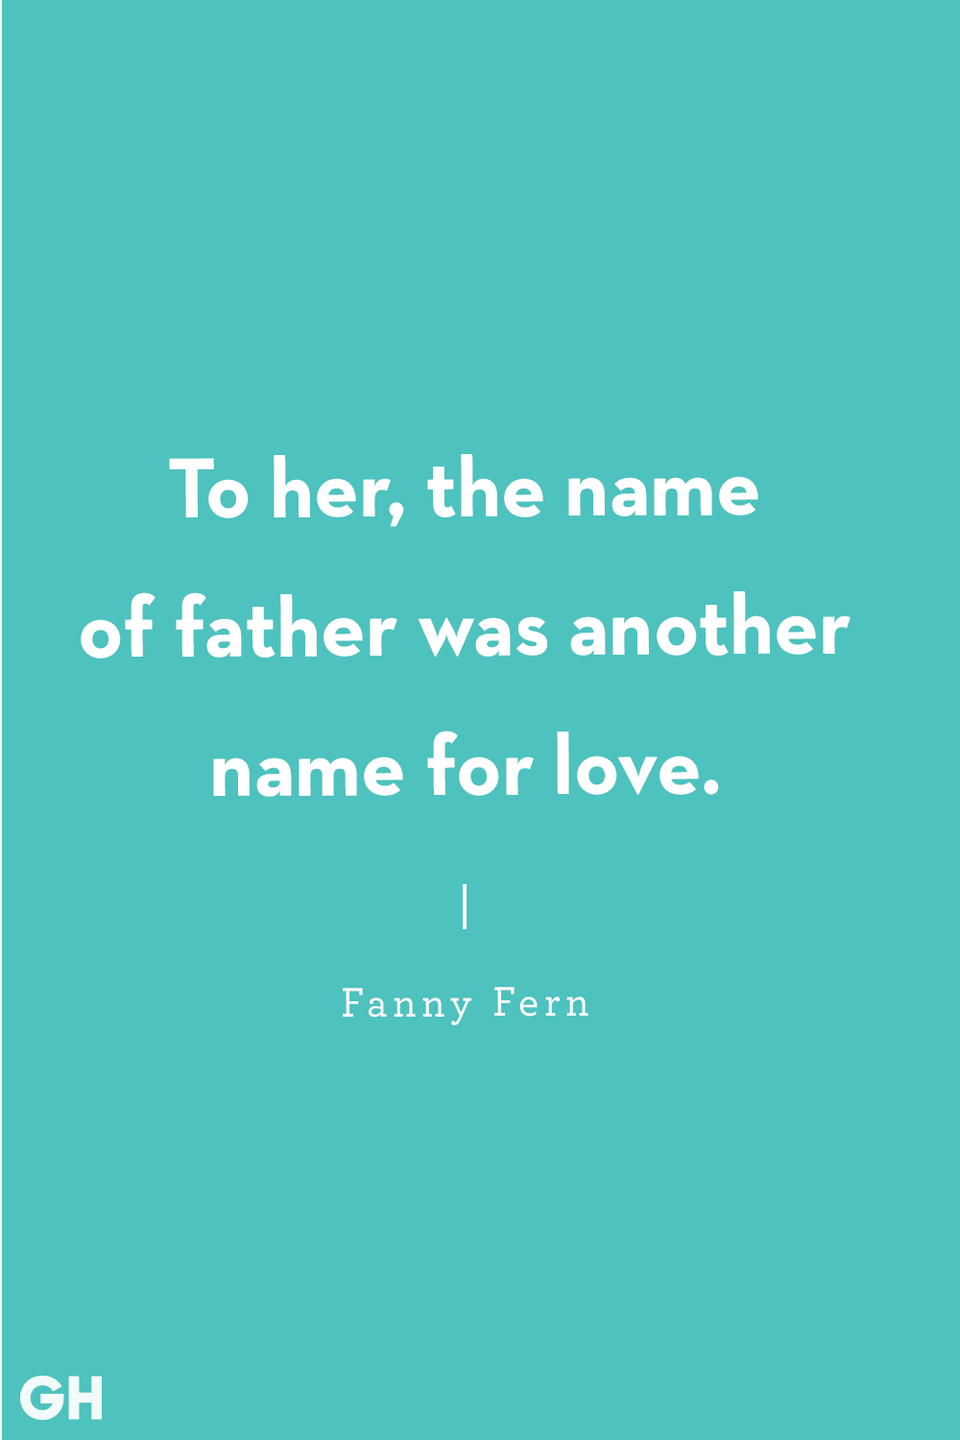 <p>To her, the name of father was another name for love.</p>